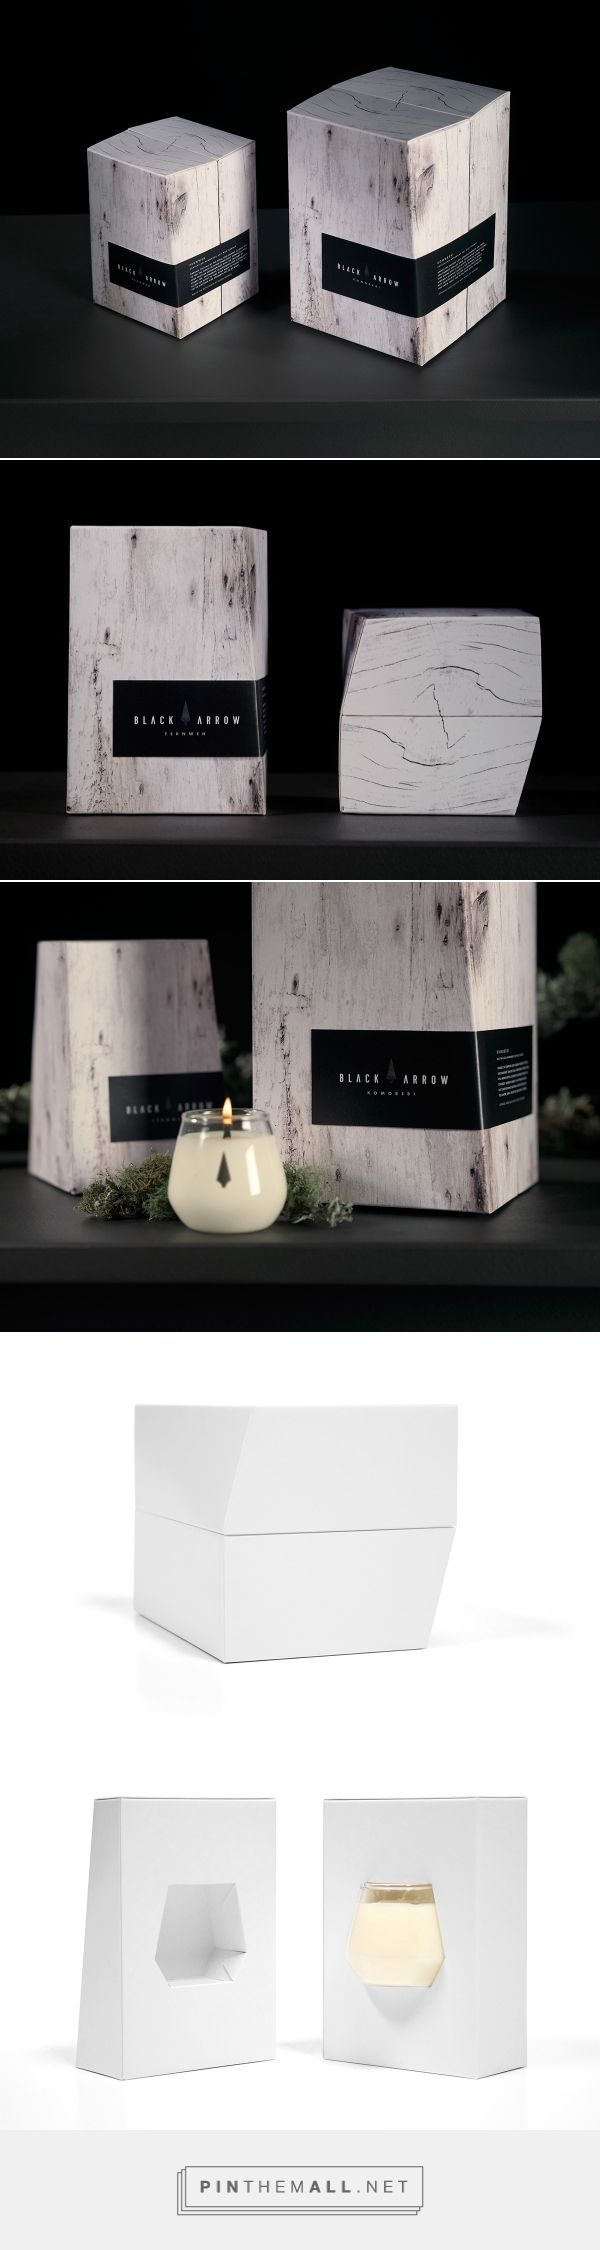 Black Arrow Candles - Arrowhead Range on Behance by Matt Bogust Auckland, New Zealand curated by Packaging Diva PD. Made to order handcrafted sophisticated brand of soy wax candles. Inside and out of packaging.